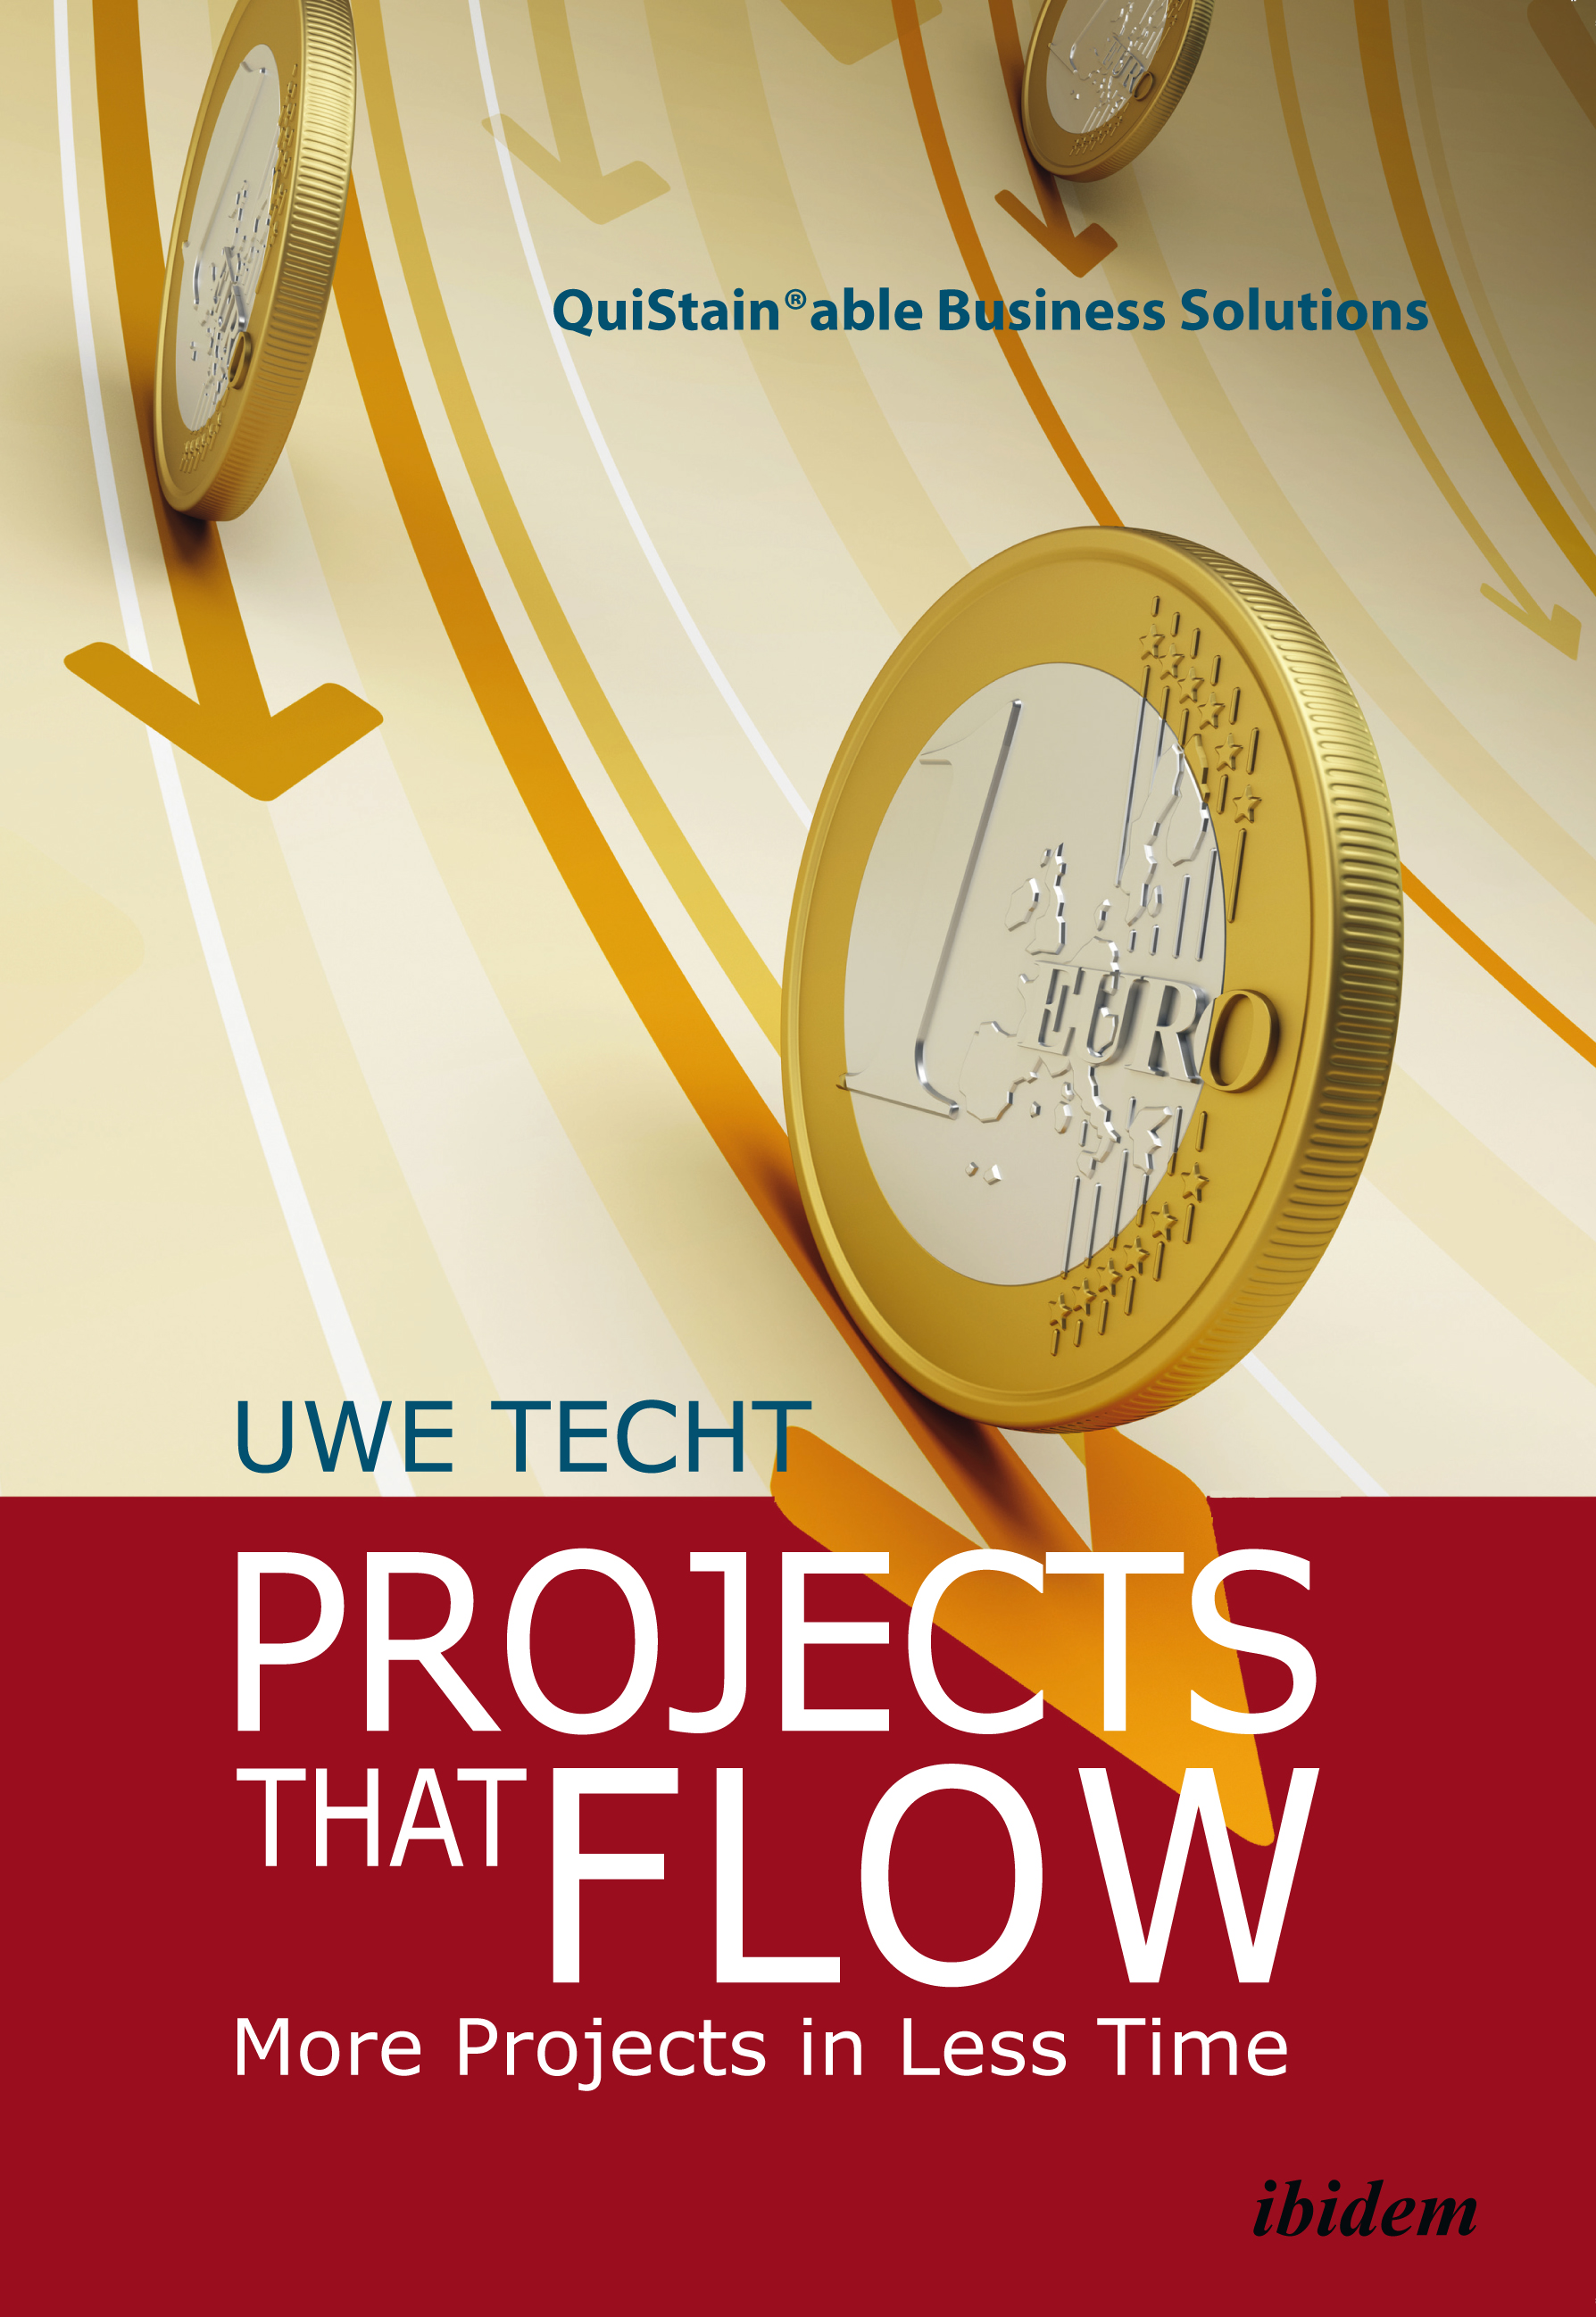 Projects-That-Flow-Uwe-Techt